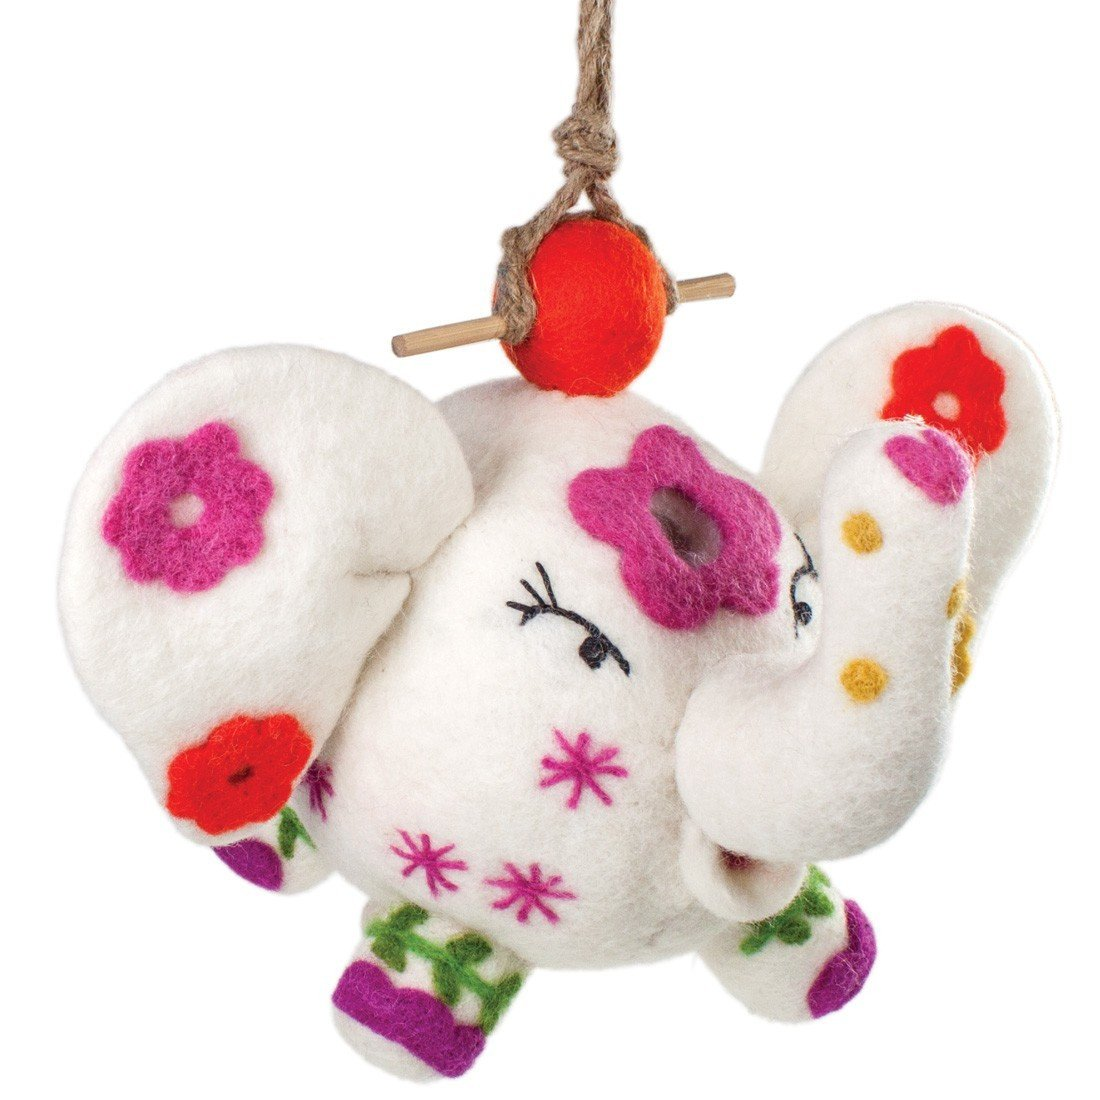 Felt Birdhouse - Flower Power Patty